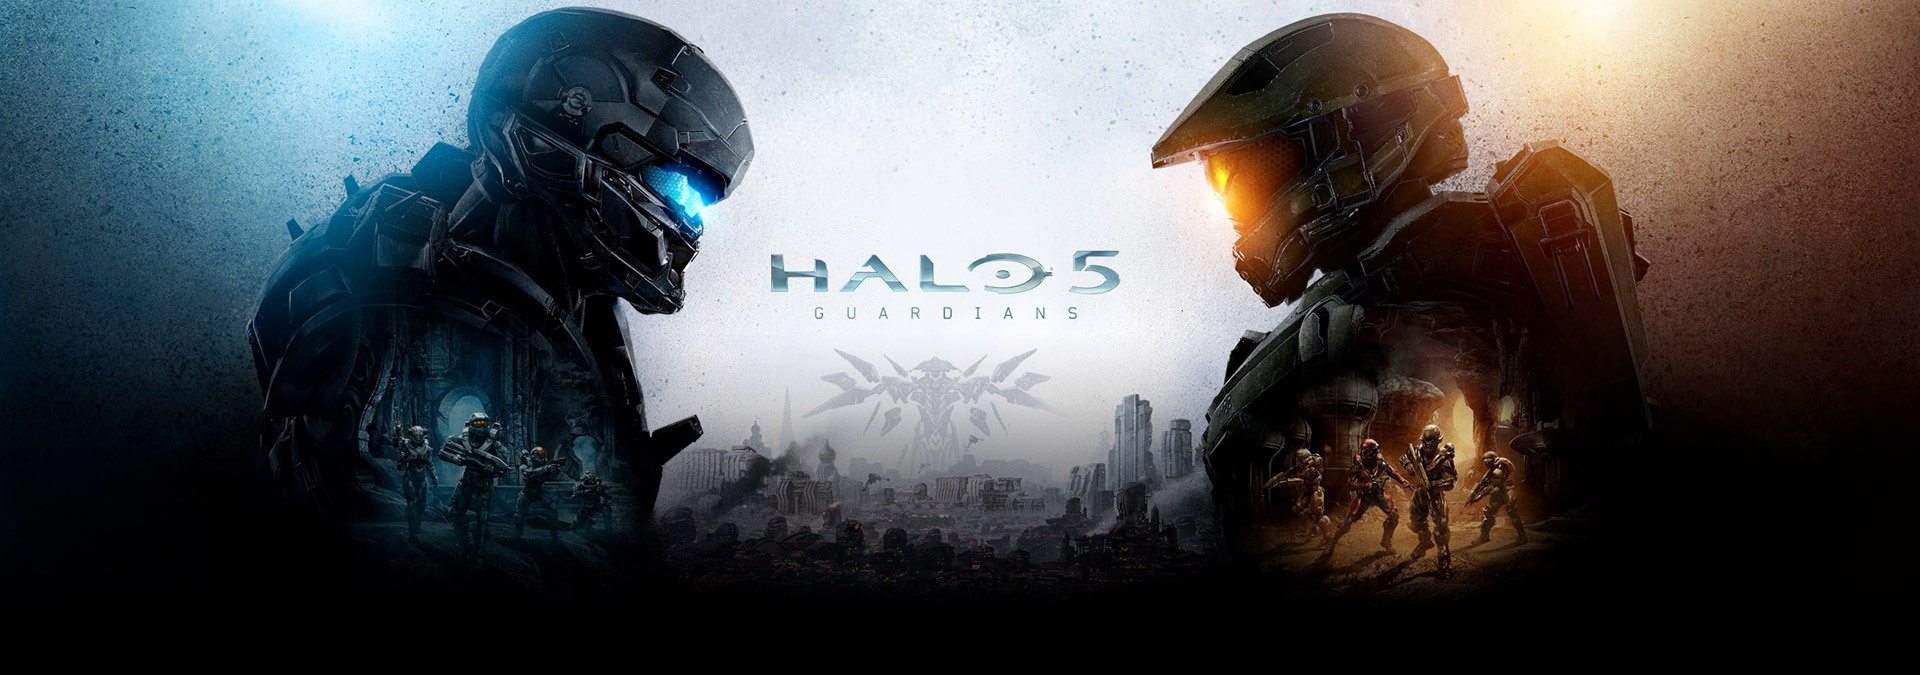 Halo 5's REQ Packs become the latest microtransaction controversy